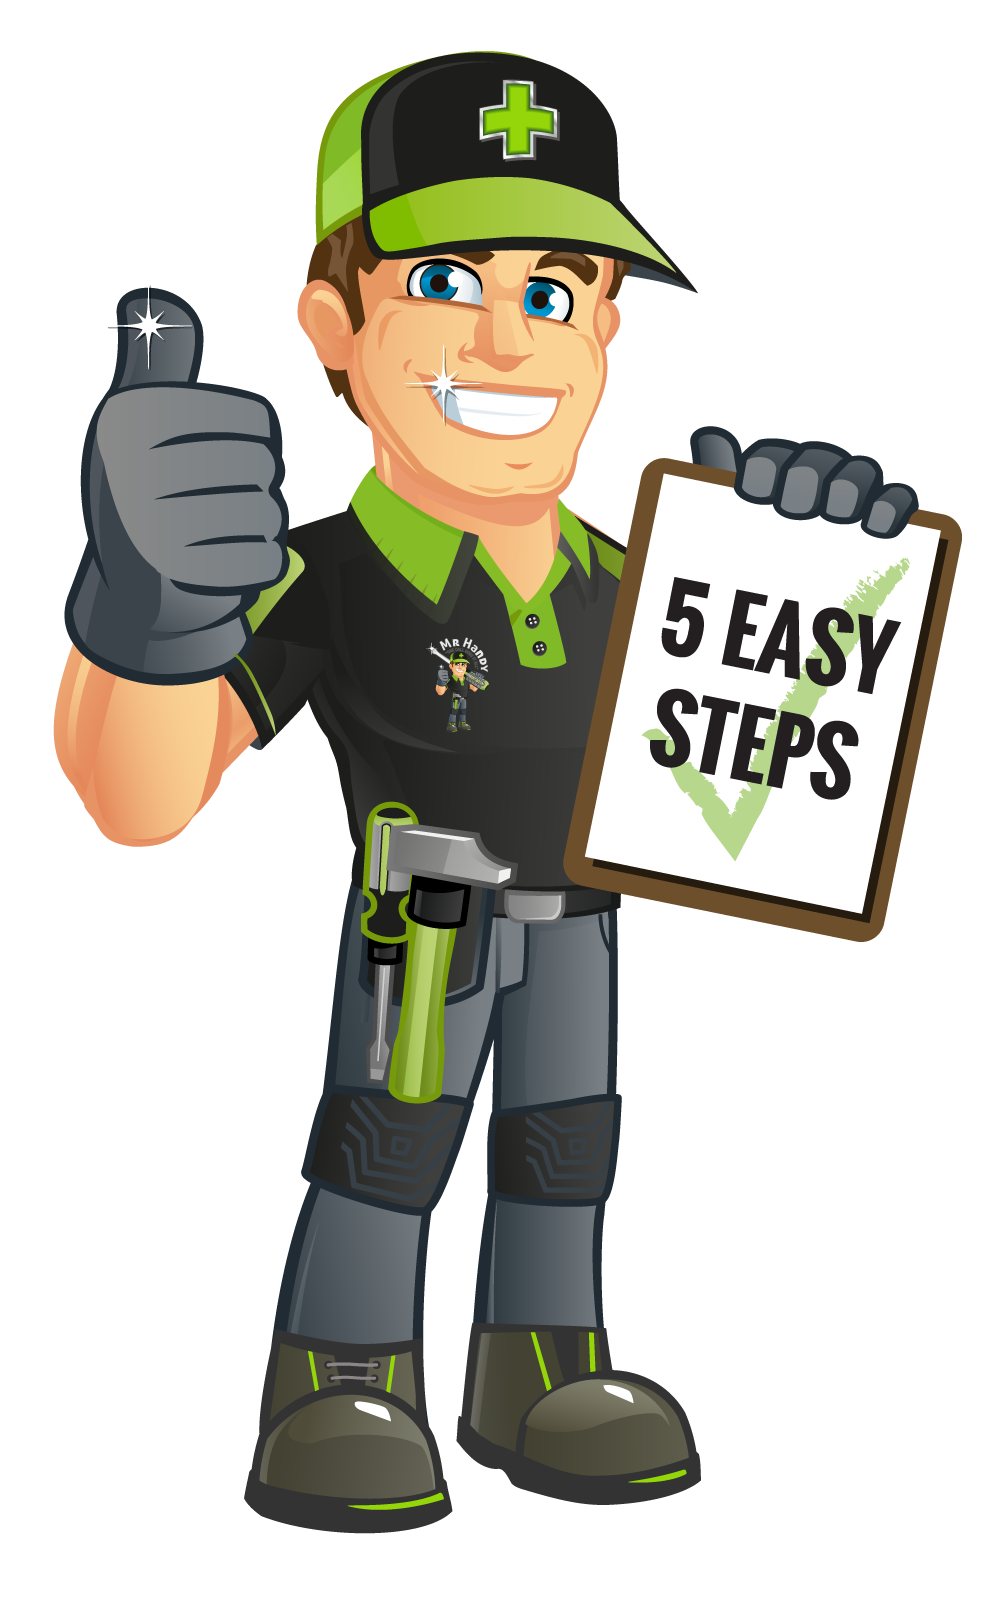 simple steps handy. Mr clipart suited man